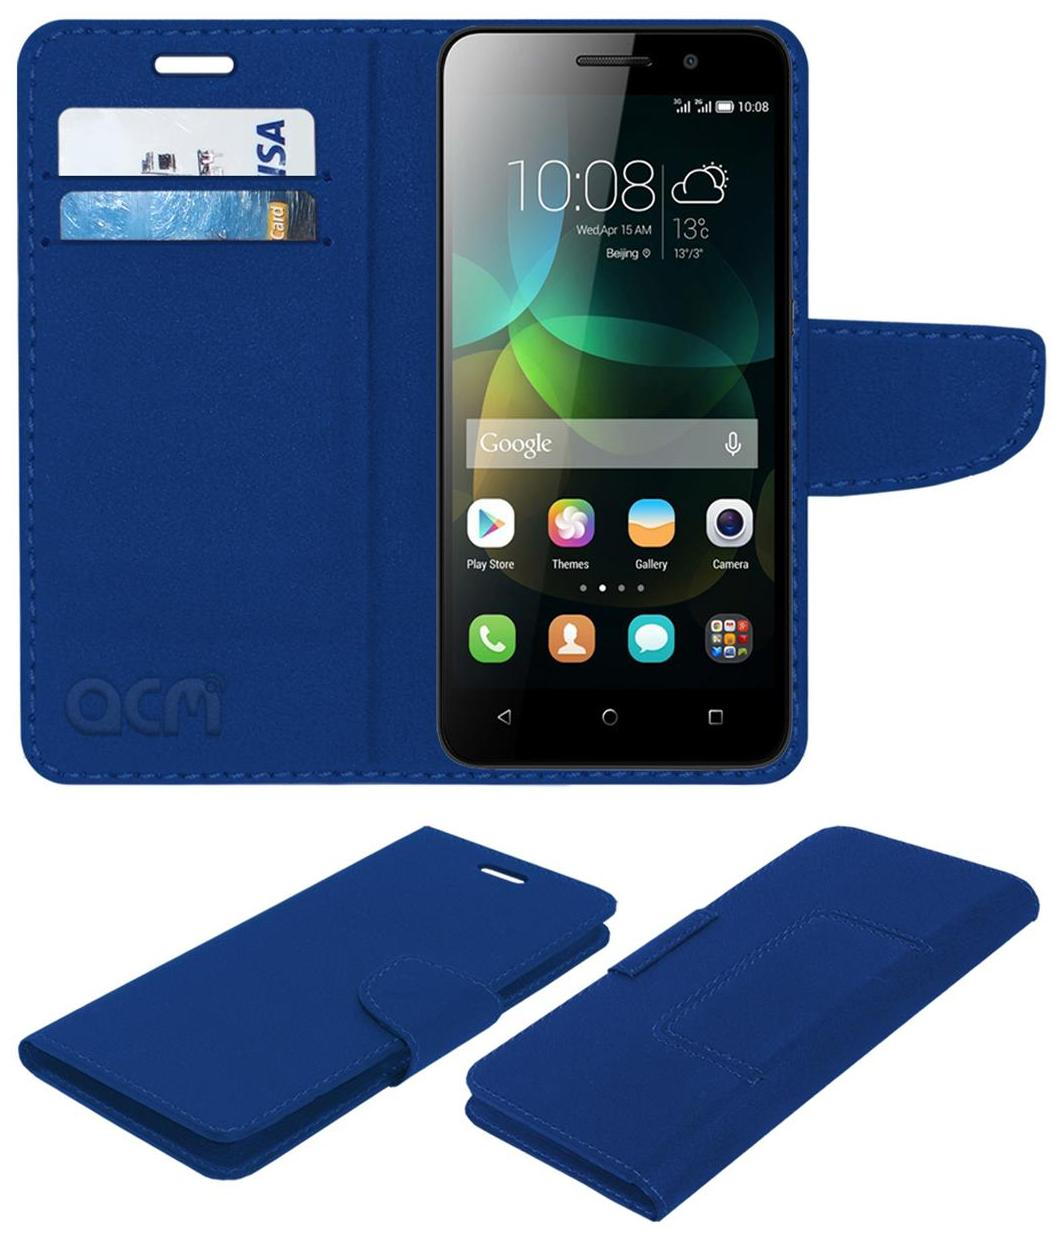 Acm Mobile Leather Flip Flap Wallet Case for Huawei Honor 4c Mobile Cover Blue by Accessories Masters